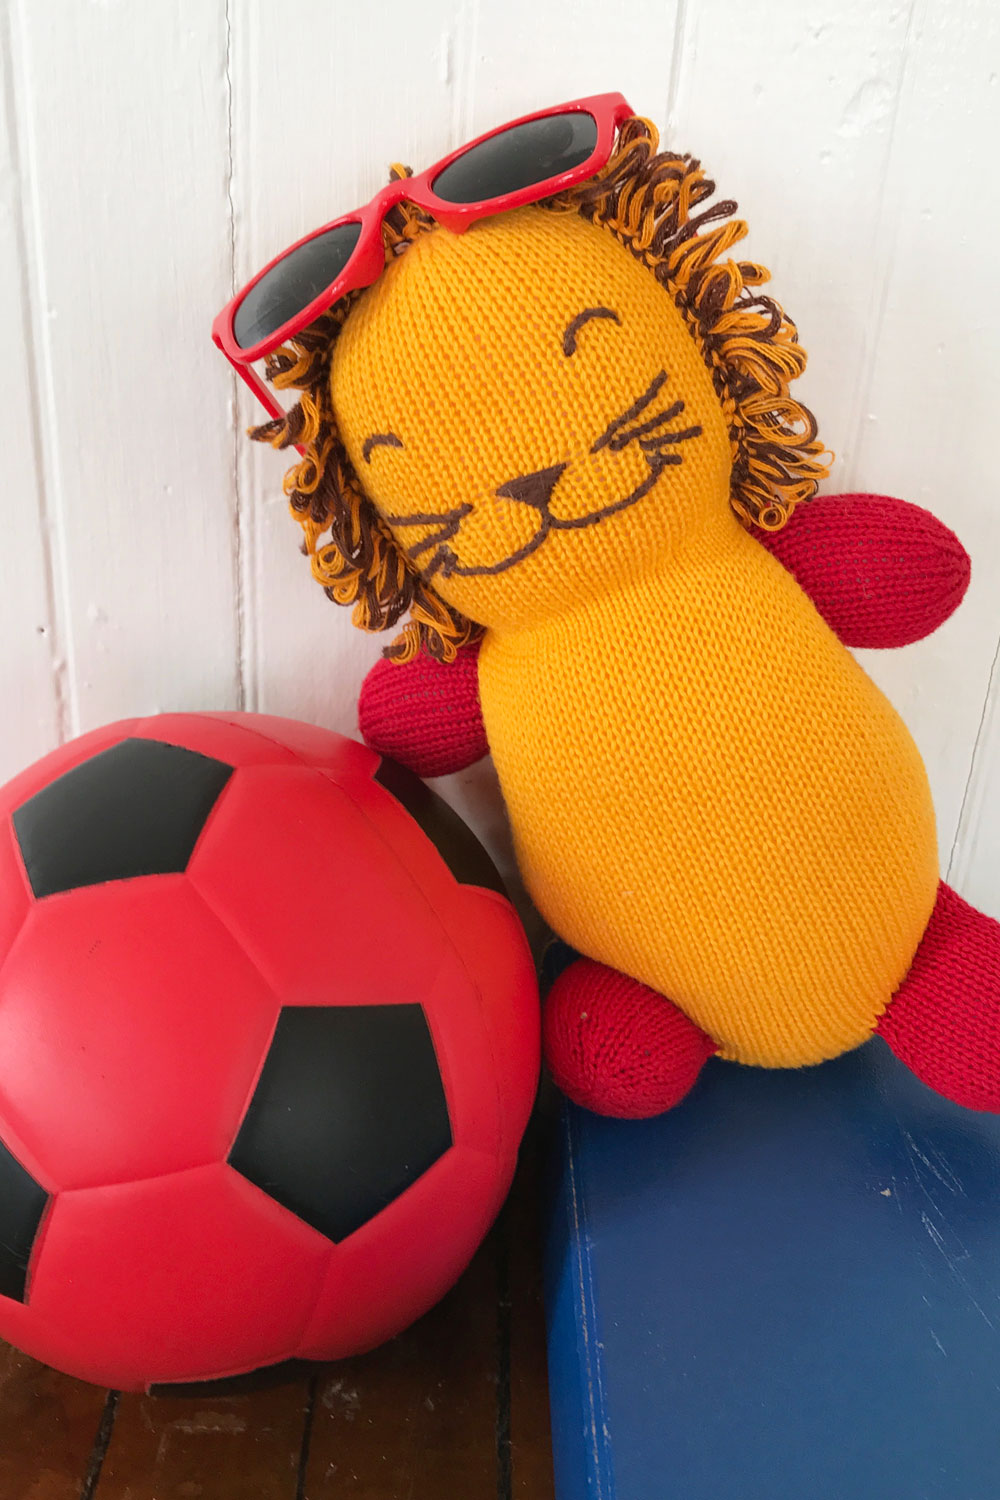 joobles-fair-trade-organic-lion-stuffed-animal-roar-the-lion